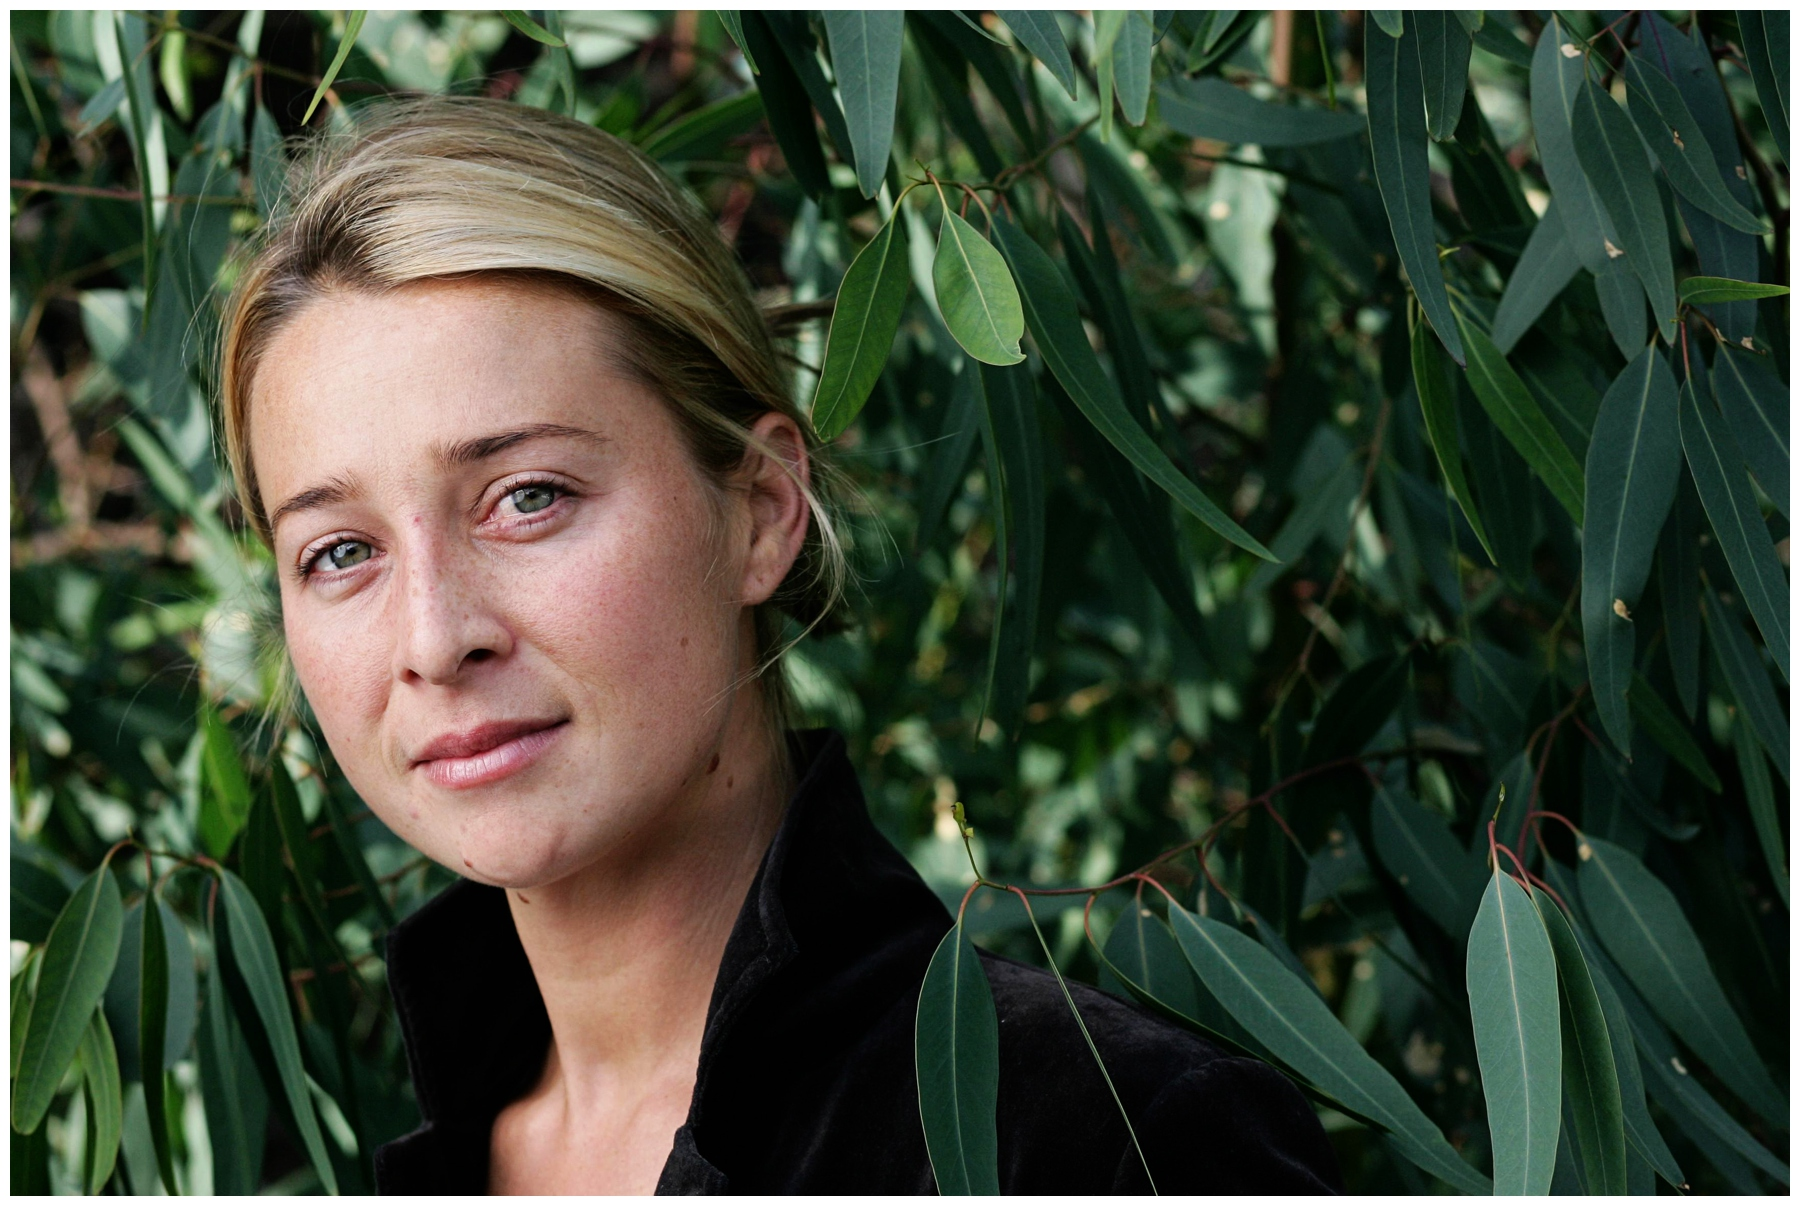 12/07/2007 FEATURES: Asher Keddie in new MTC production The Glass Soldier.